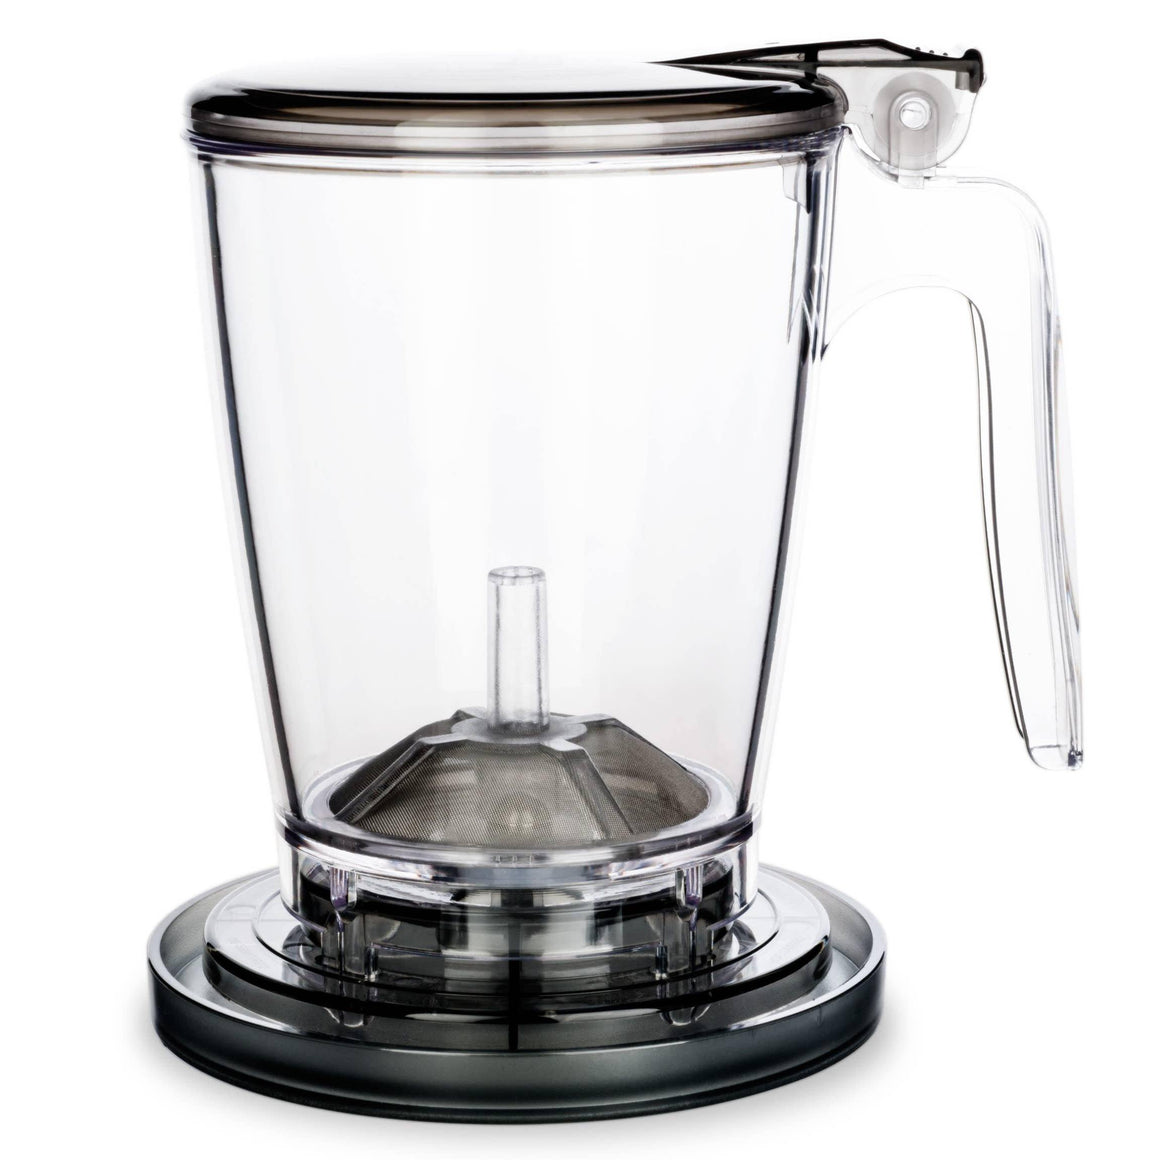 Rapid Tea Maker 32 Oz